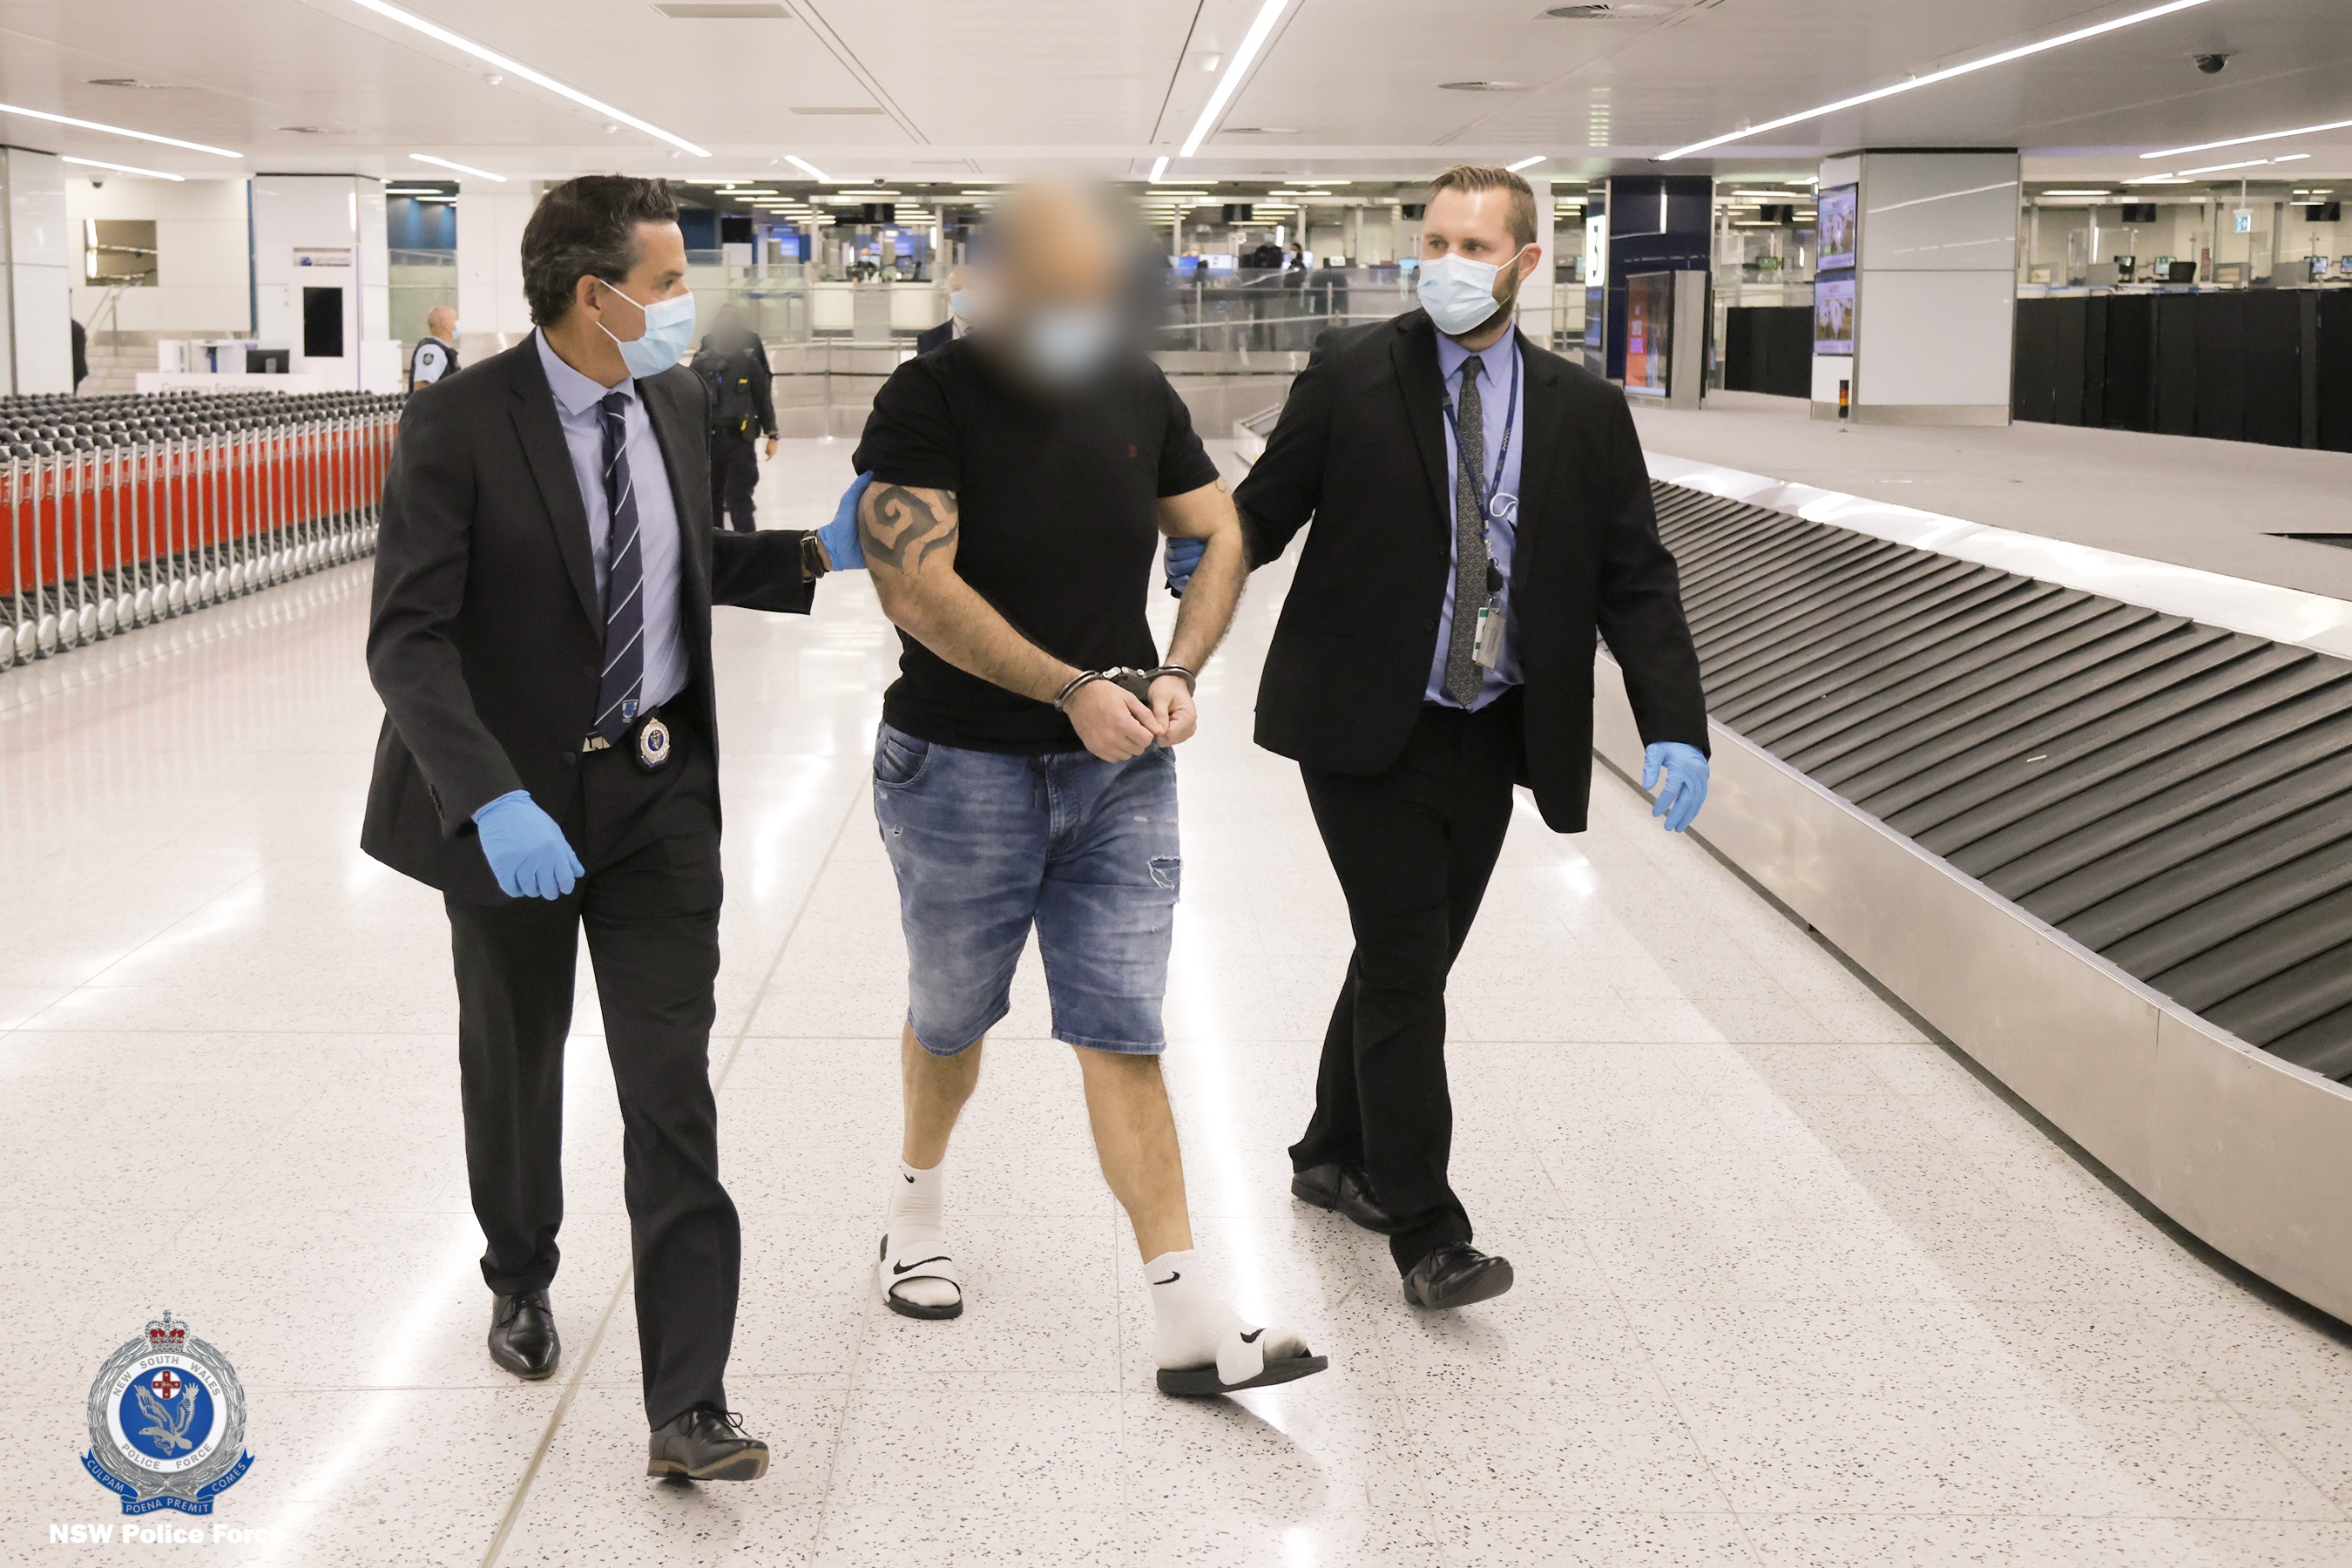 Their arrests mark the end of an eight-year investigation into a transnational criminal syndicate.